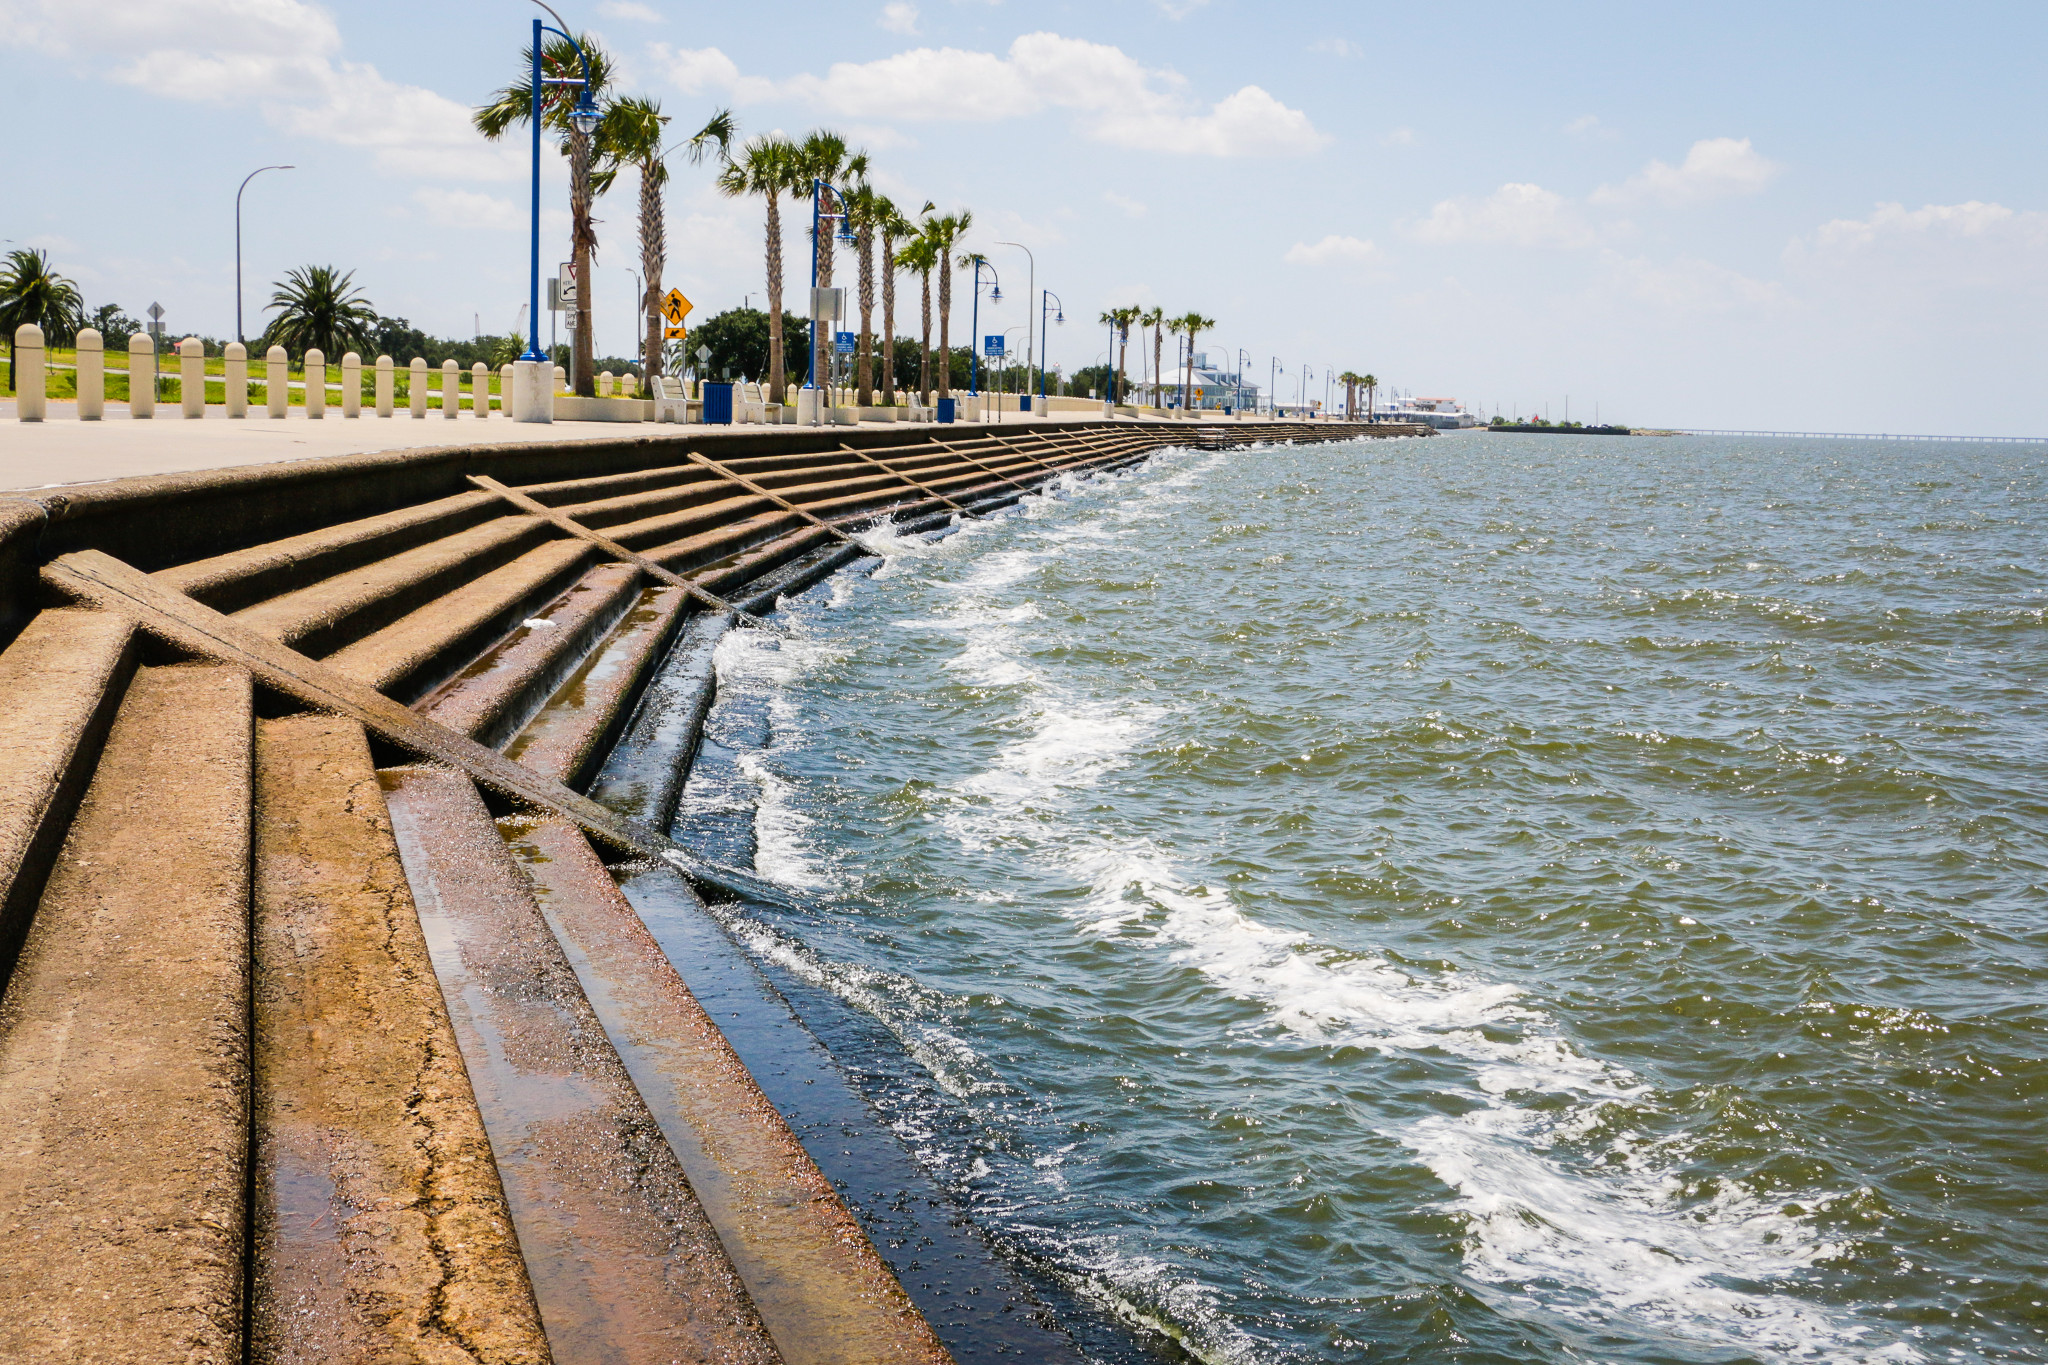 The lakefront along Lakeshore Drive stretches for miles. (Photo: Rebecca Ratliff)